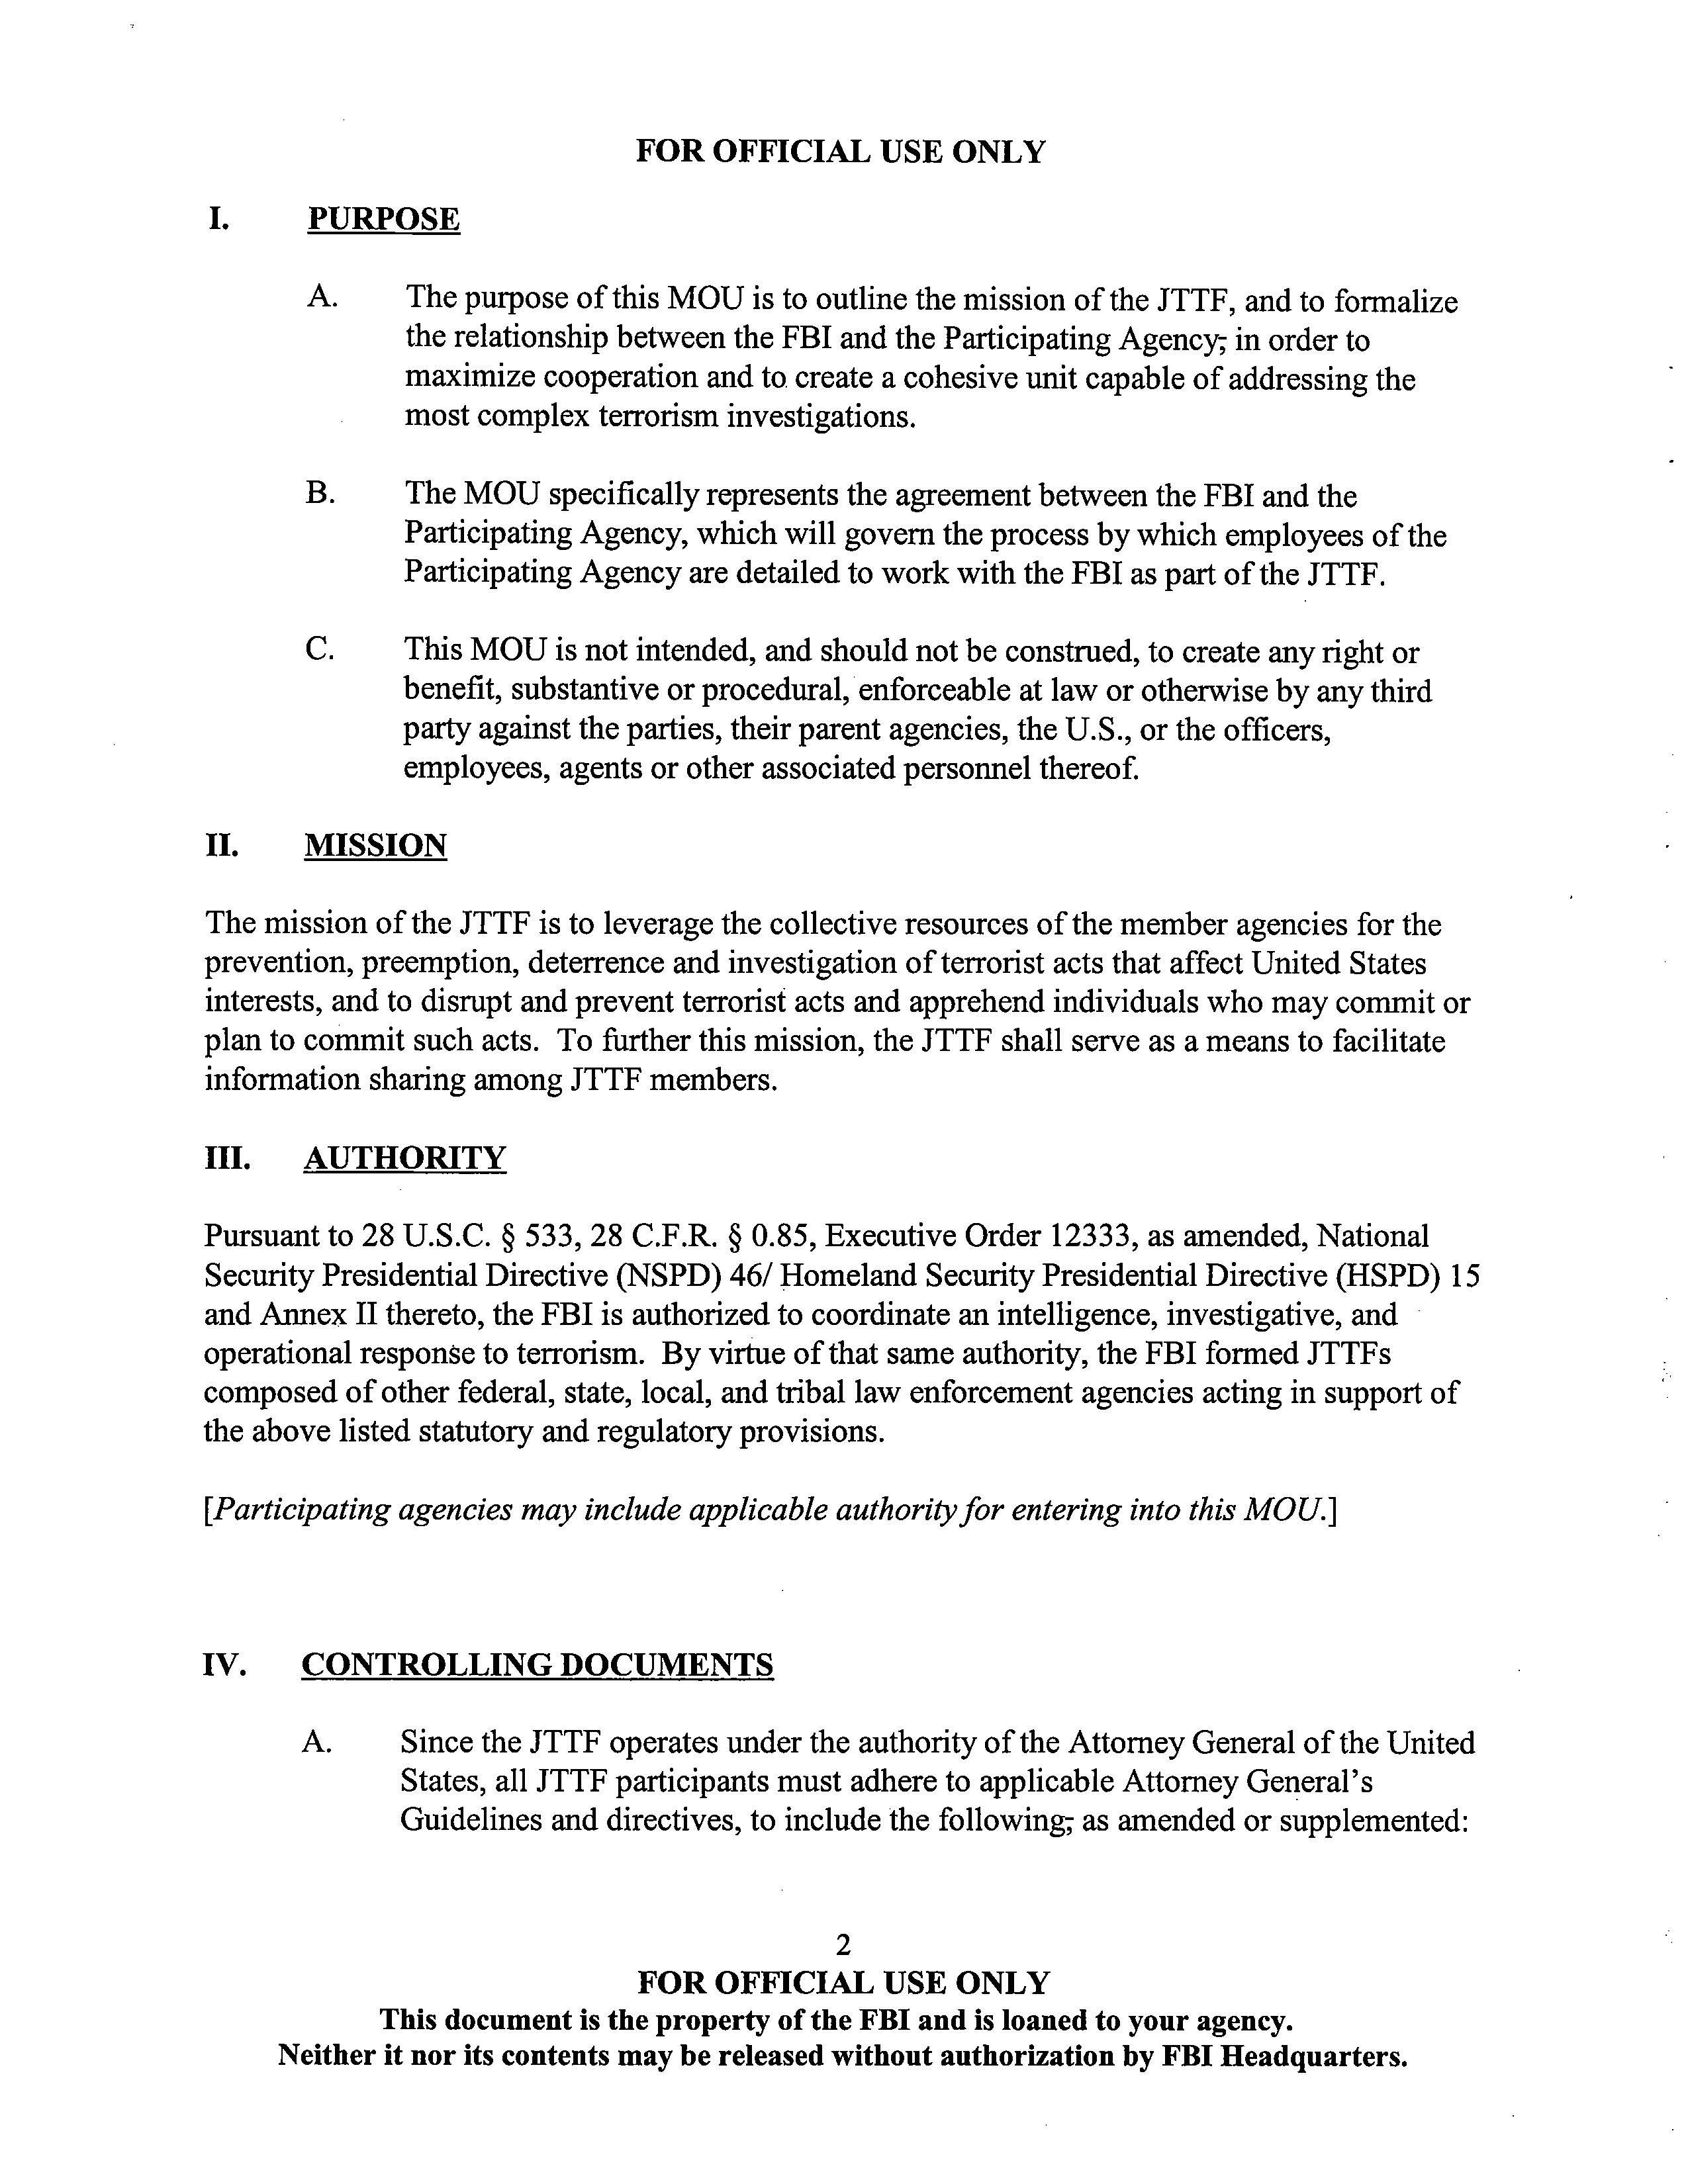 fbi joint terrorism task force jttf model memorandum of